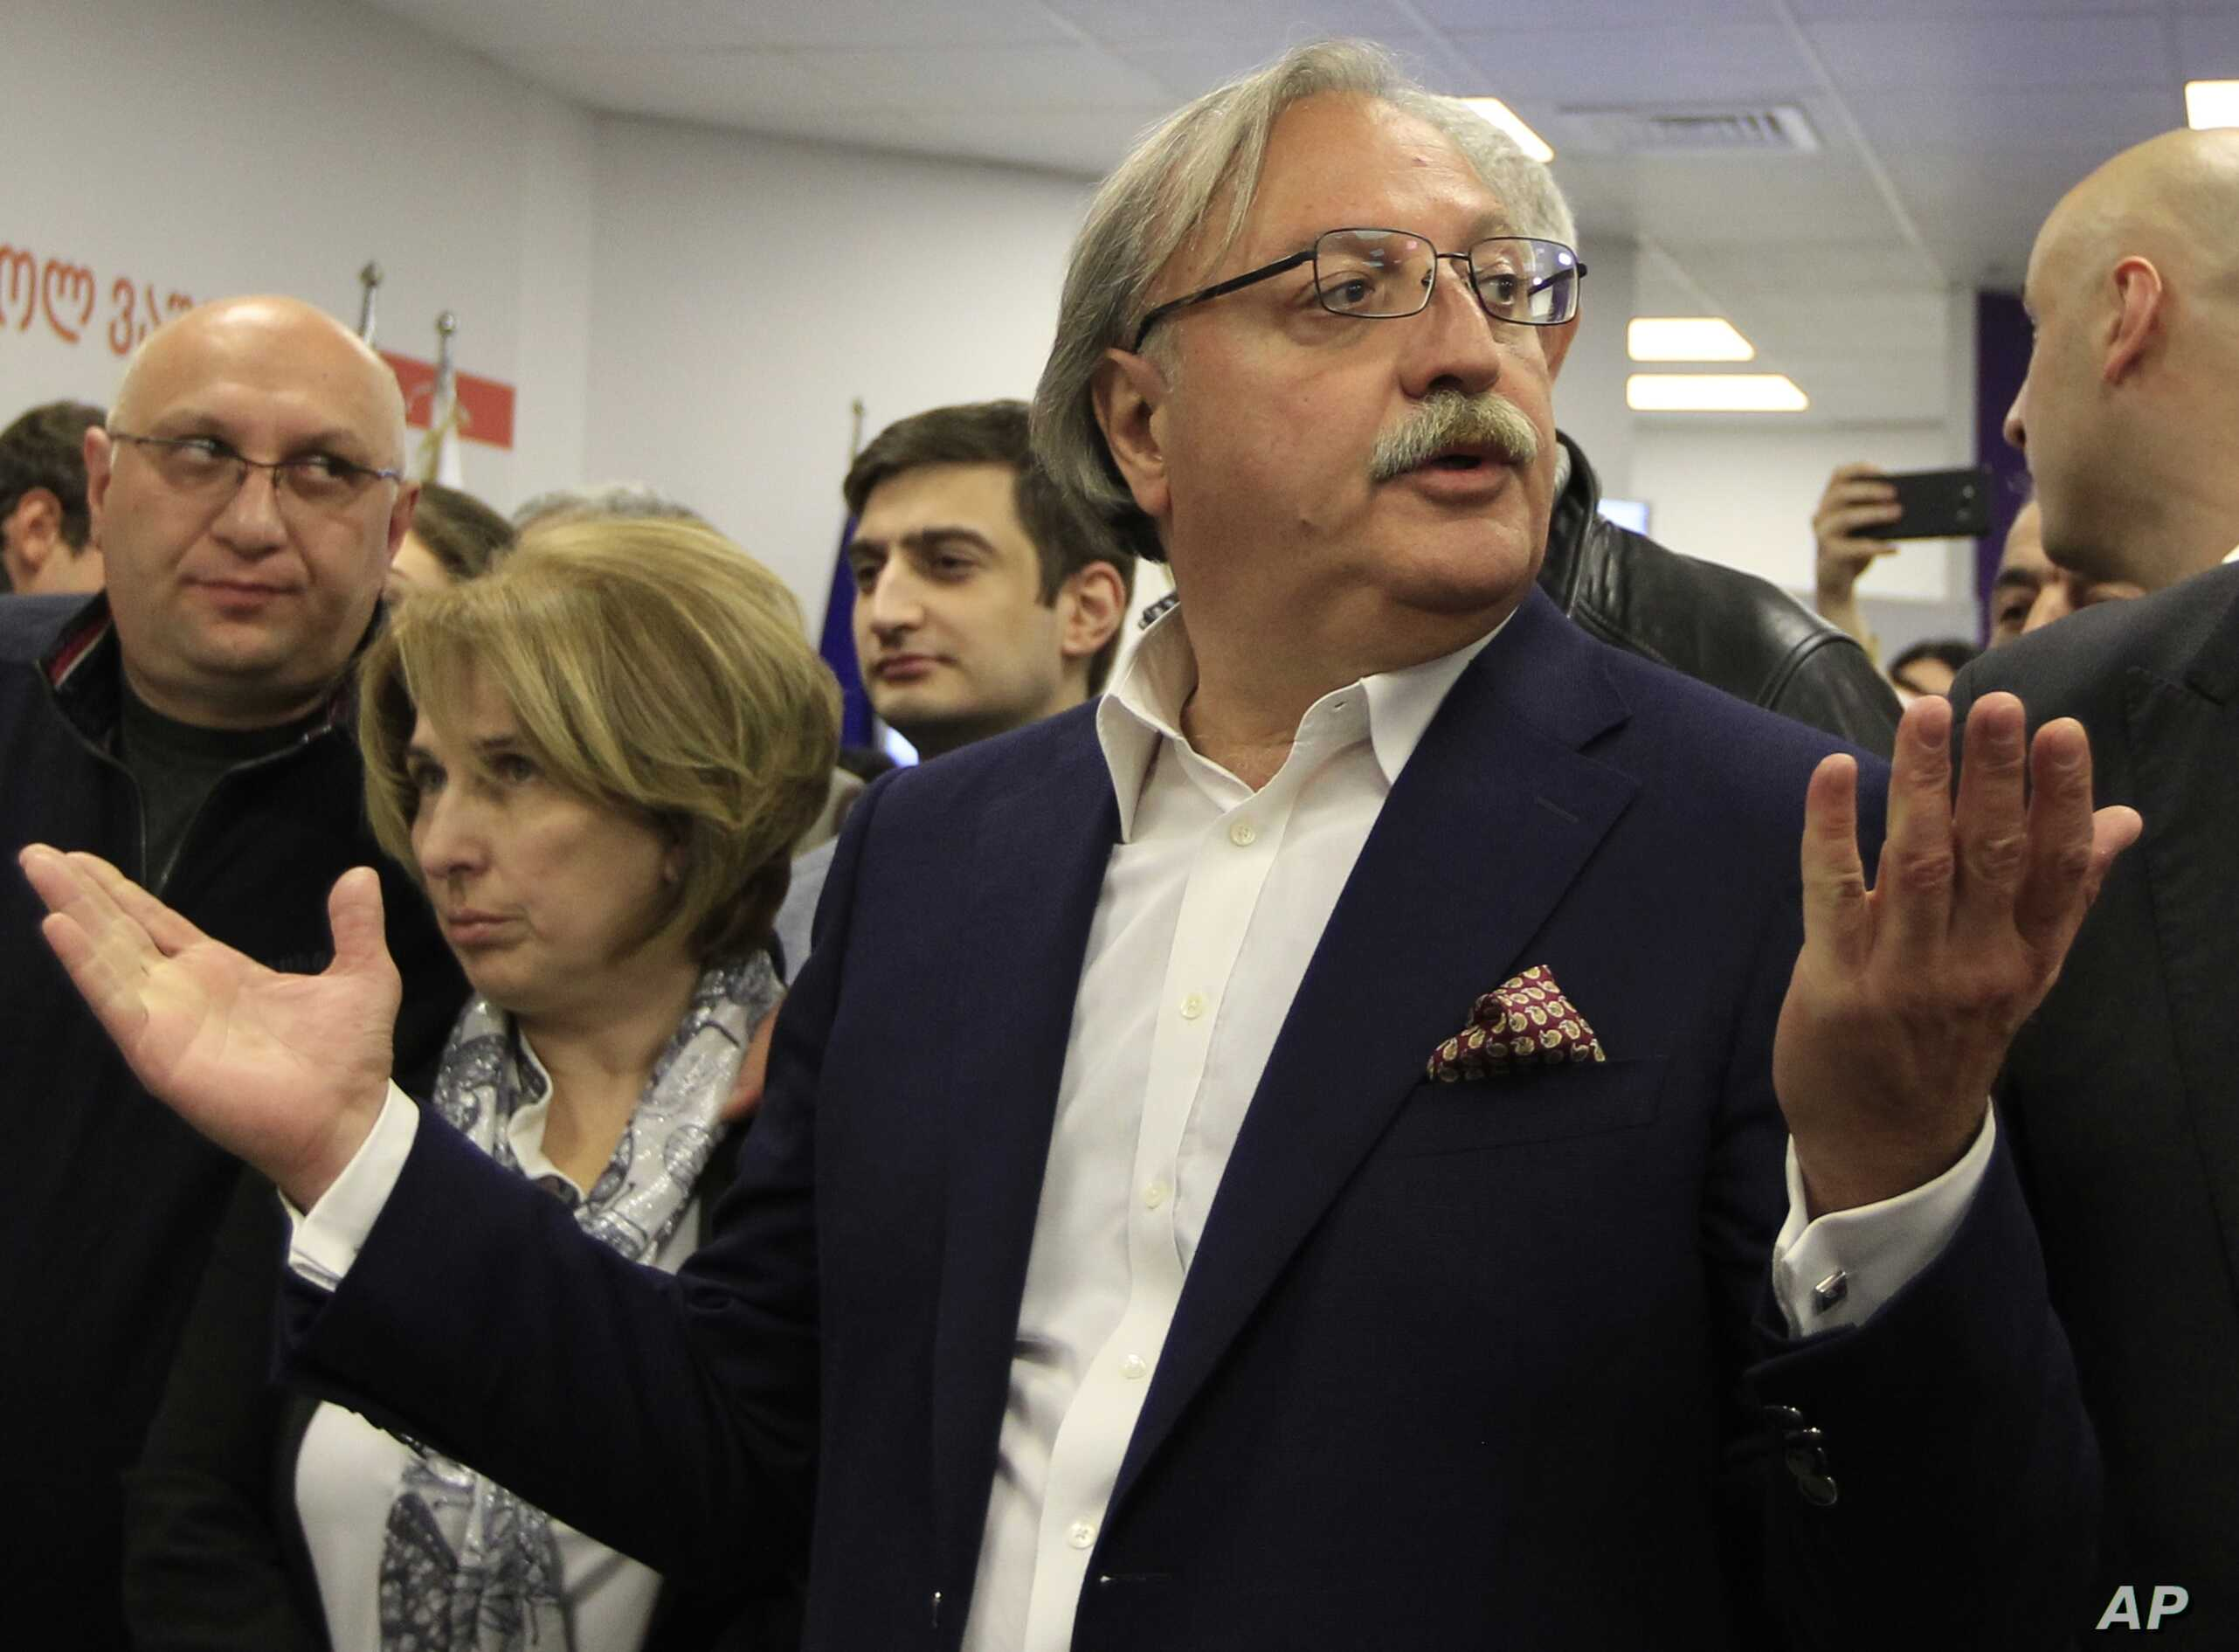 Grigol Vashadze, Georgia's former foreign minister and presidential candidate, center, gestures while speaking to journalists at his headquarters during the presidential election in Tbilisi, Georgia, Oct. 28, 2018.